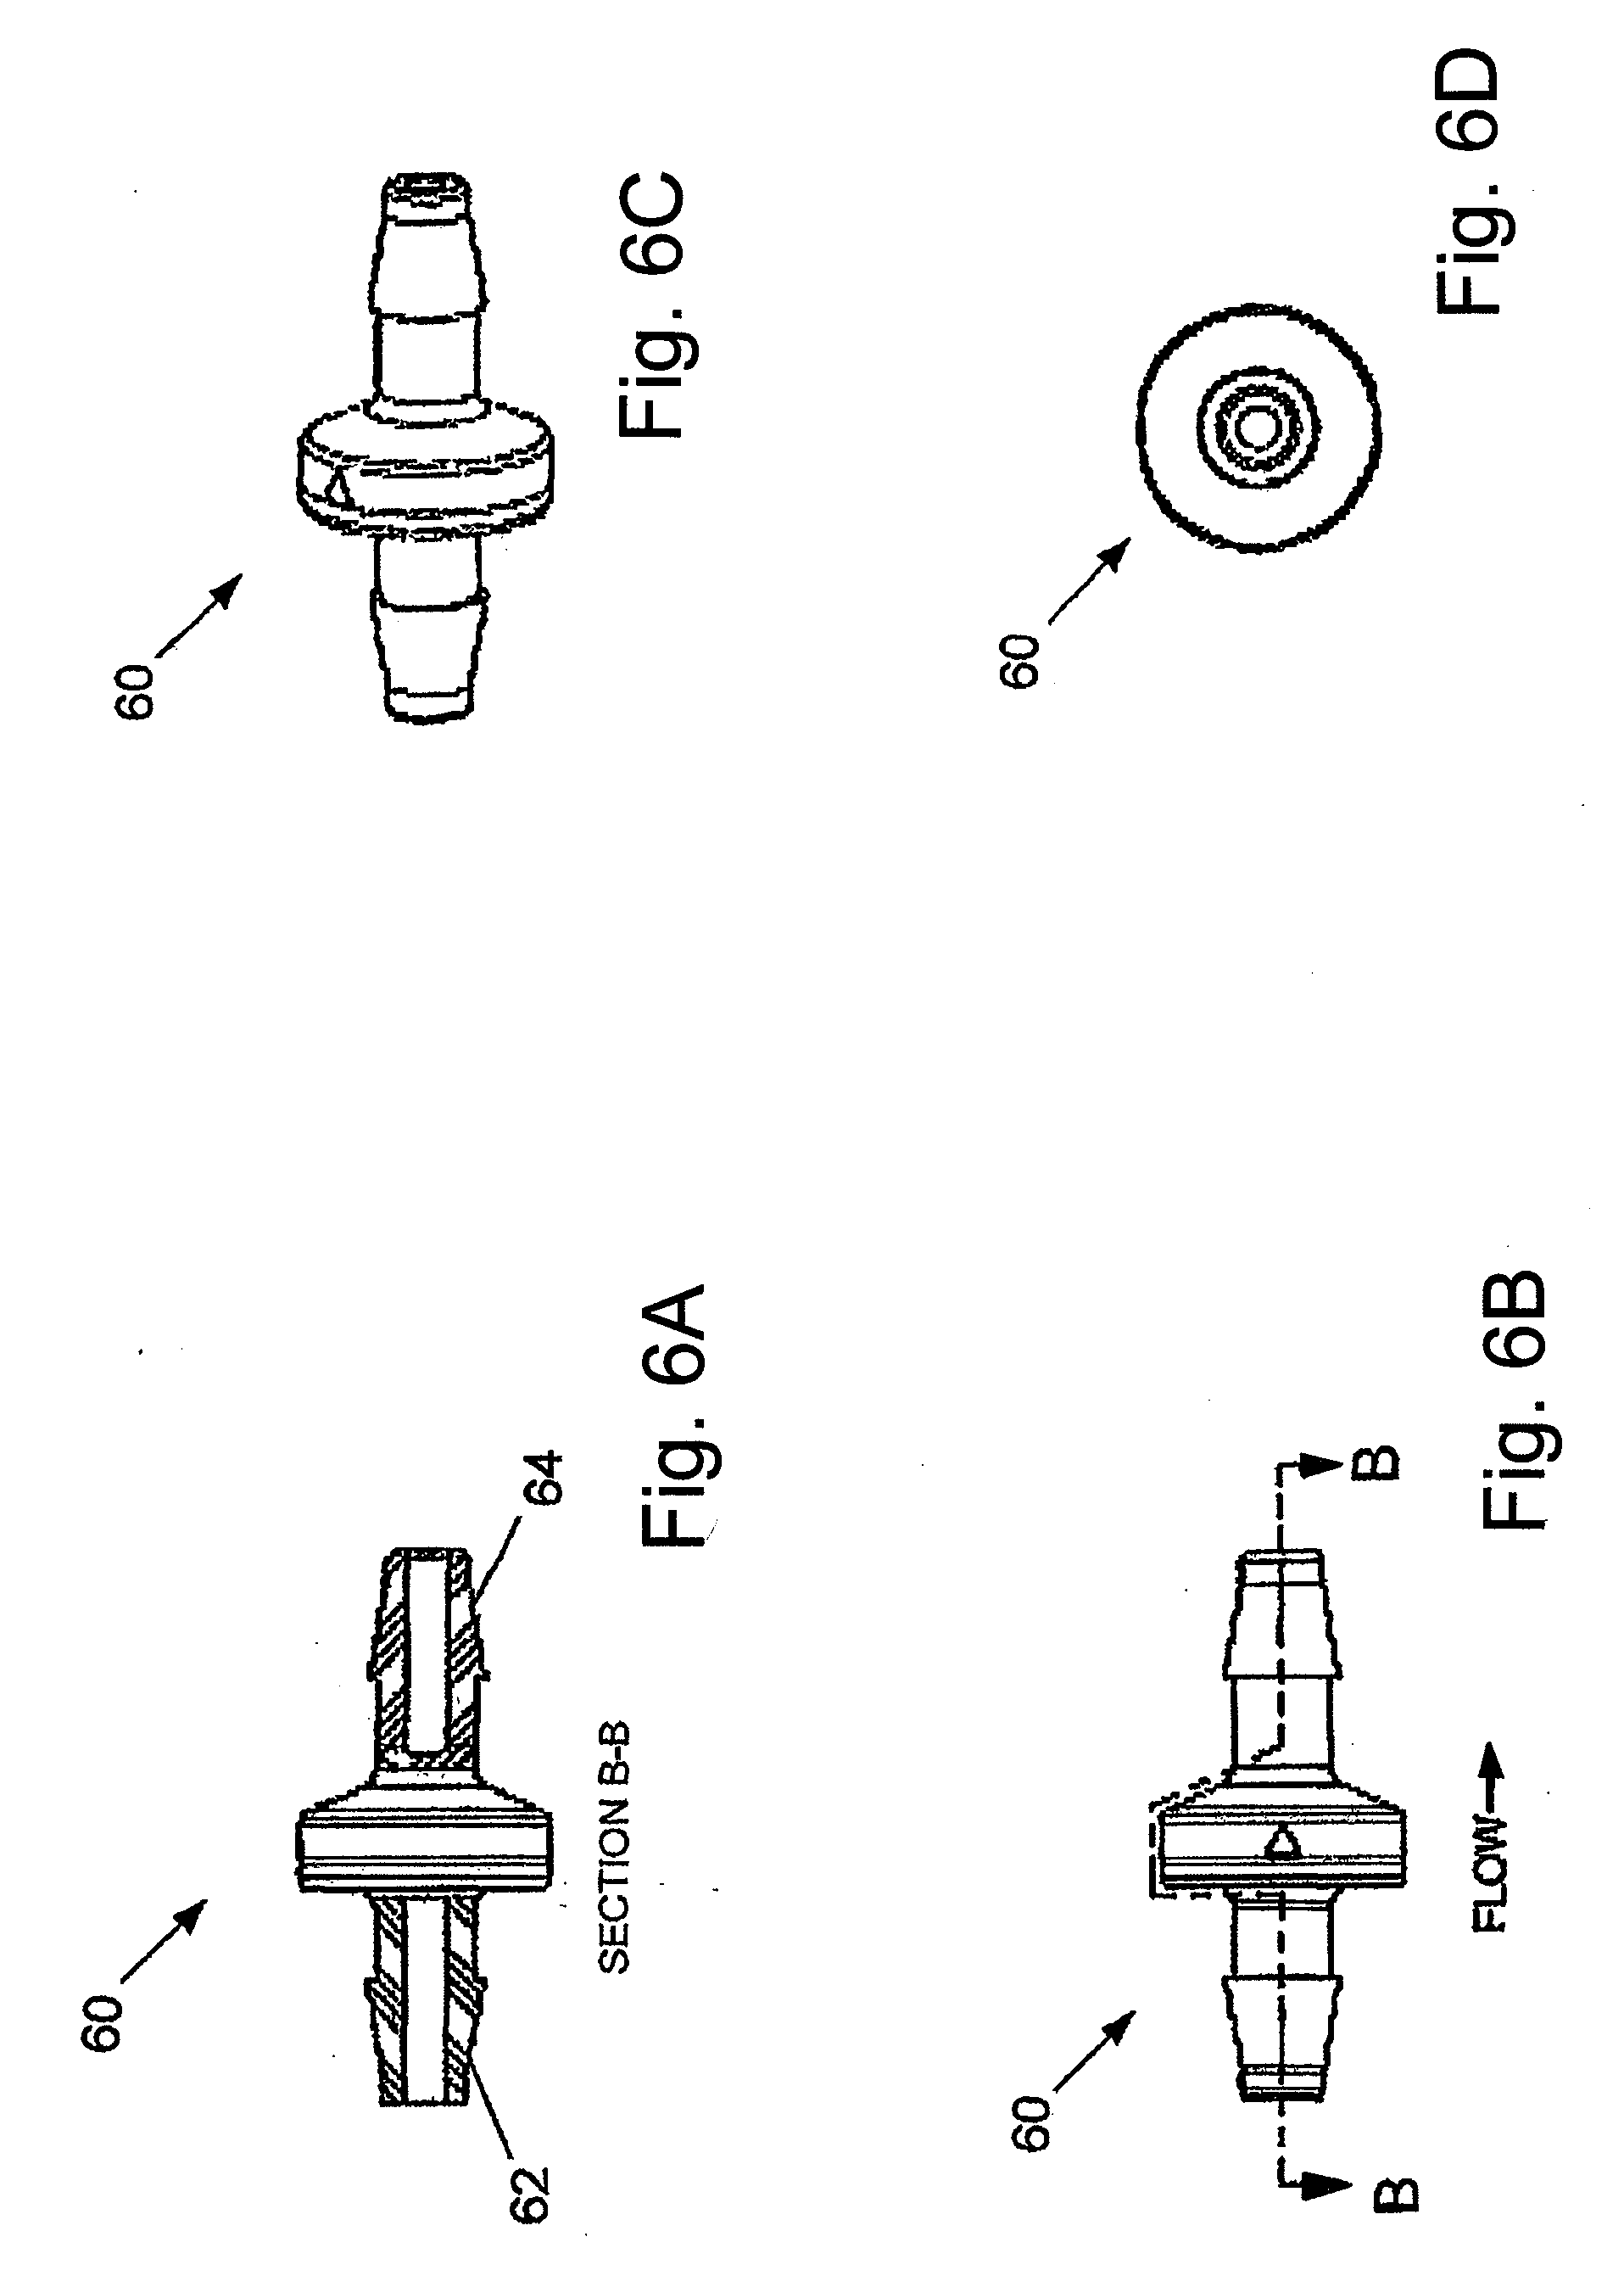 Pictures of Manual Irrigation Pump